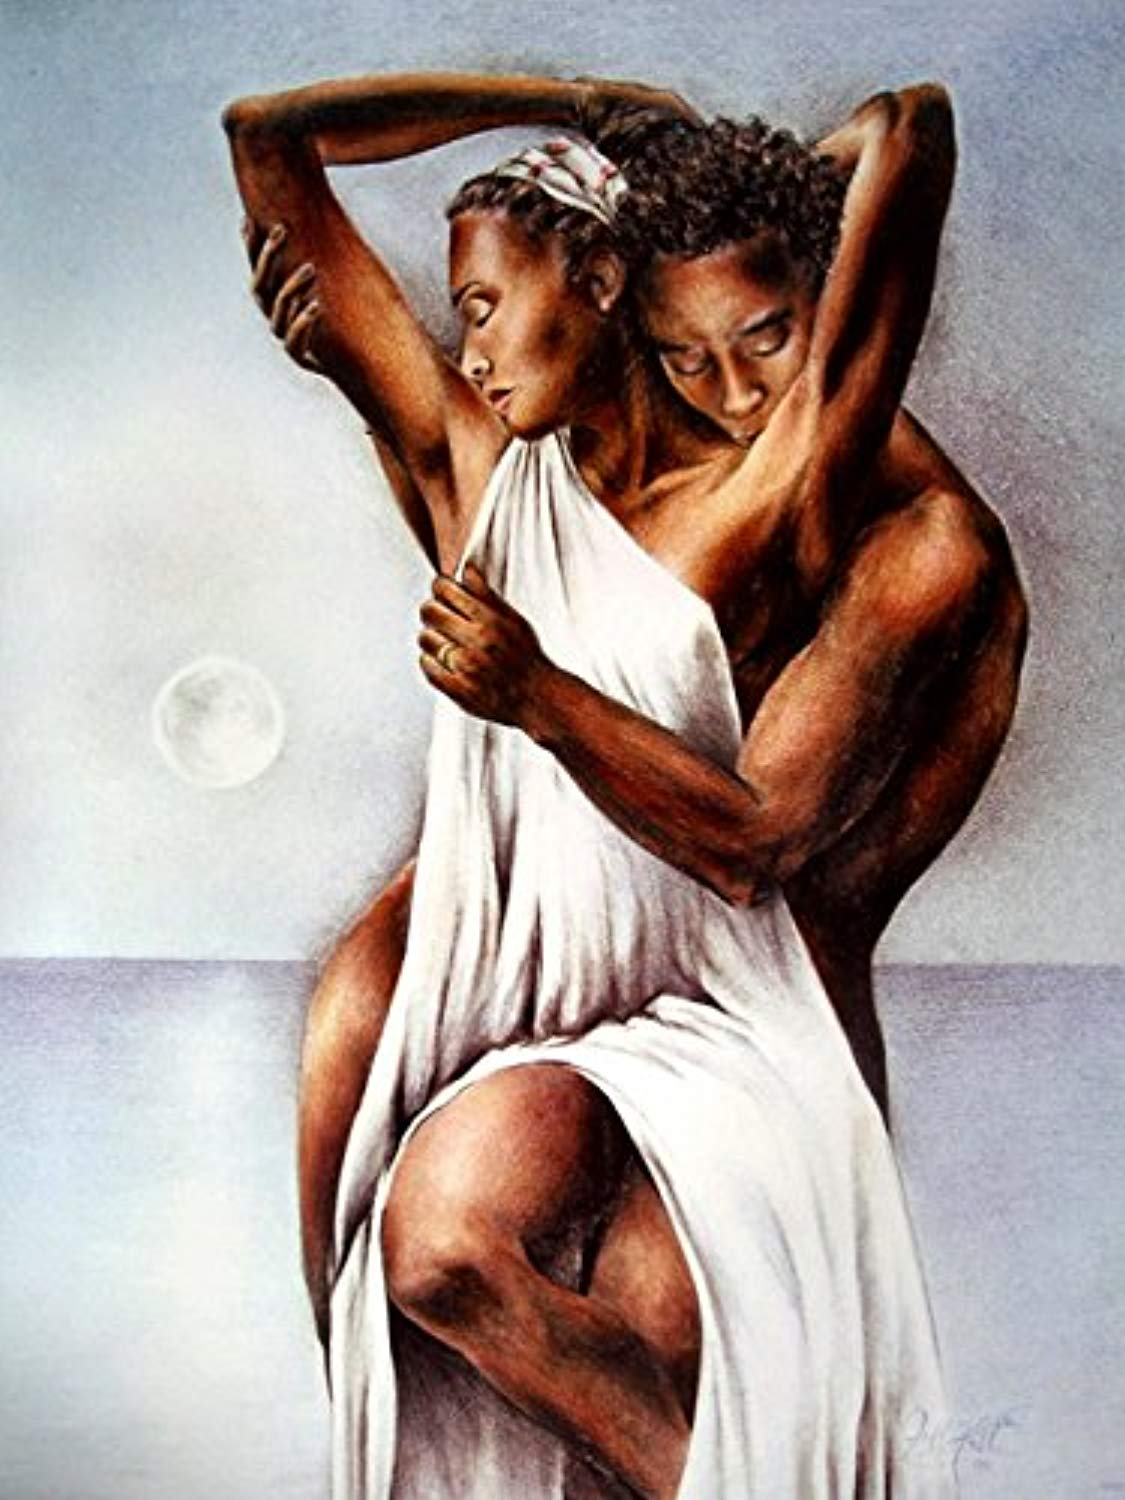 African American Love Hot Painting Art 32x24 Print Poster - Ufumbuzi - Home